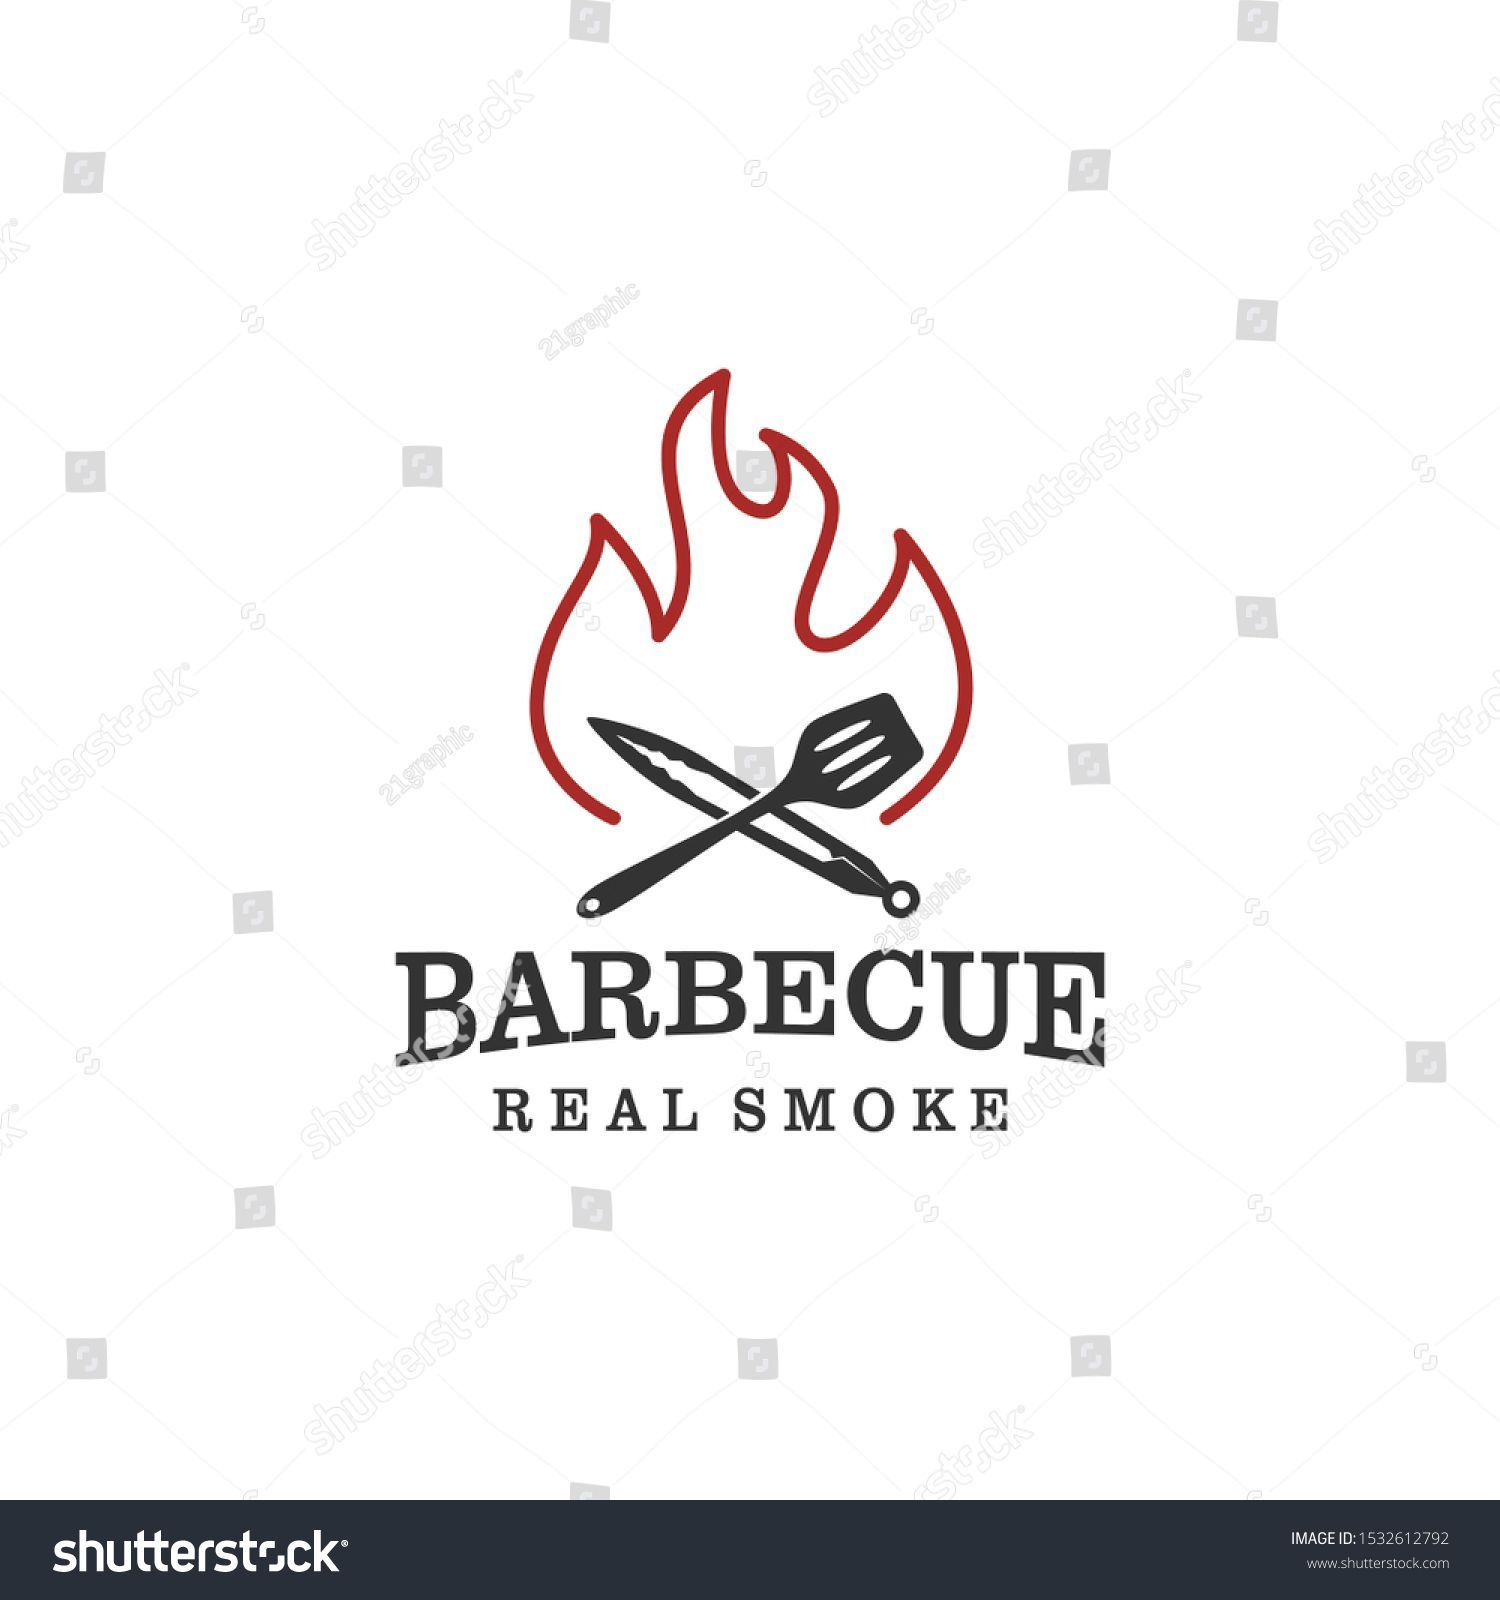 grill restaurant food drink logo design  barbeque fire meat sausage spatula element Barbecue bbq grill restaurant food drink logo design  barbeque fire meat sausage spatu...